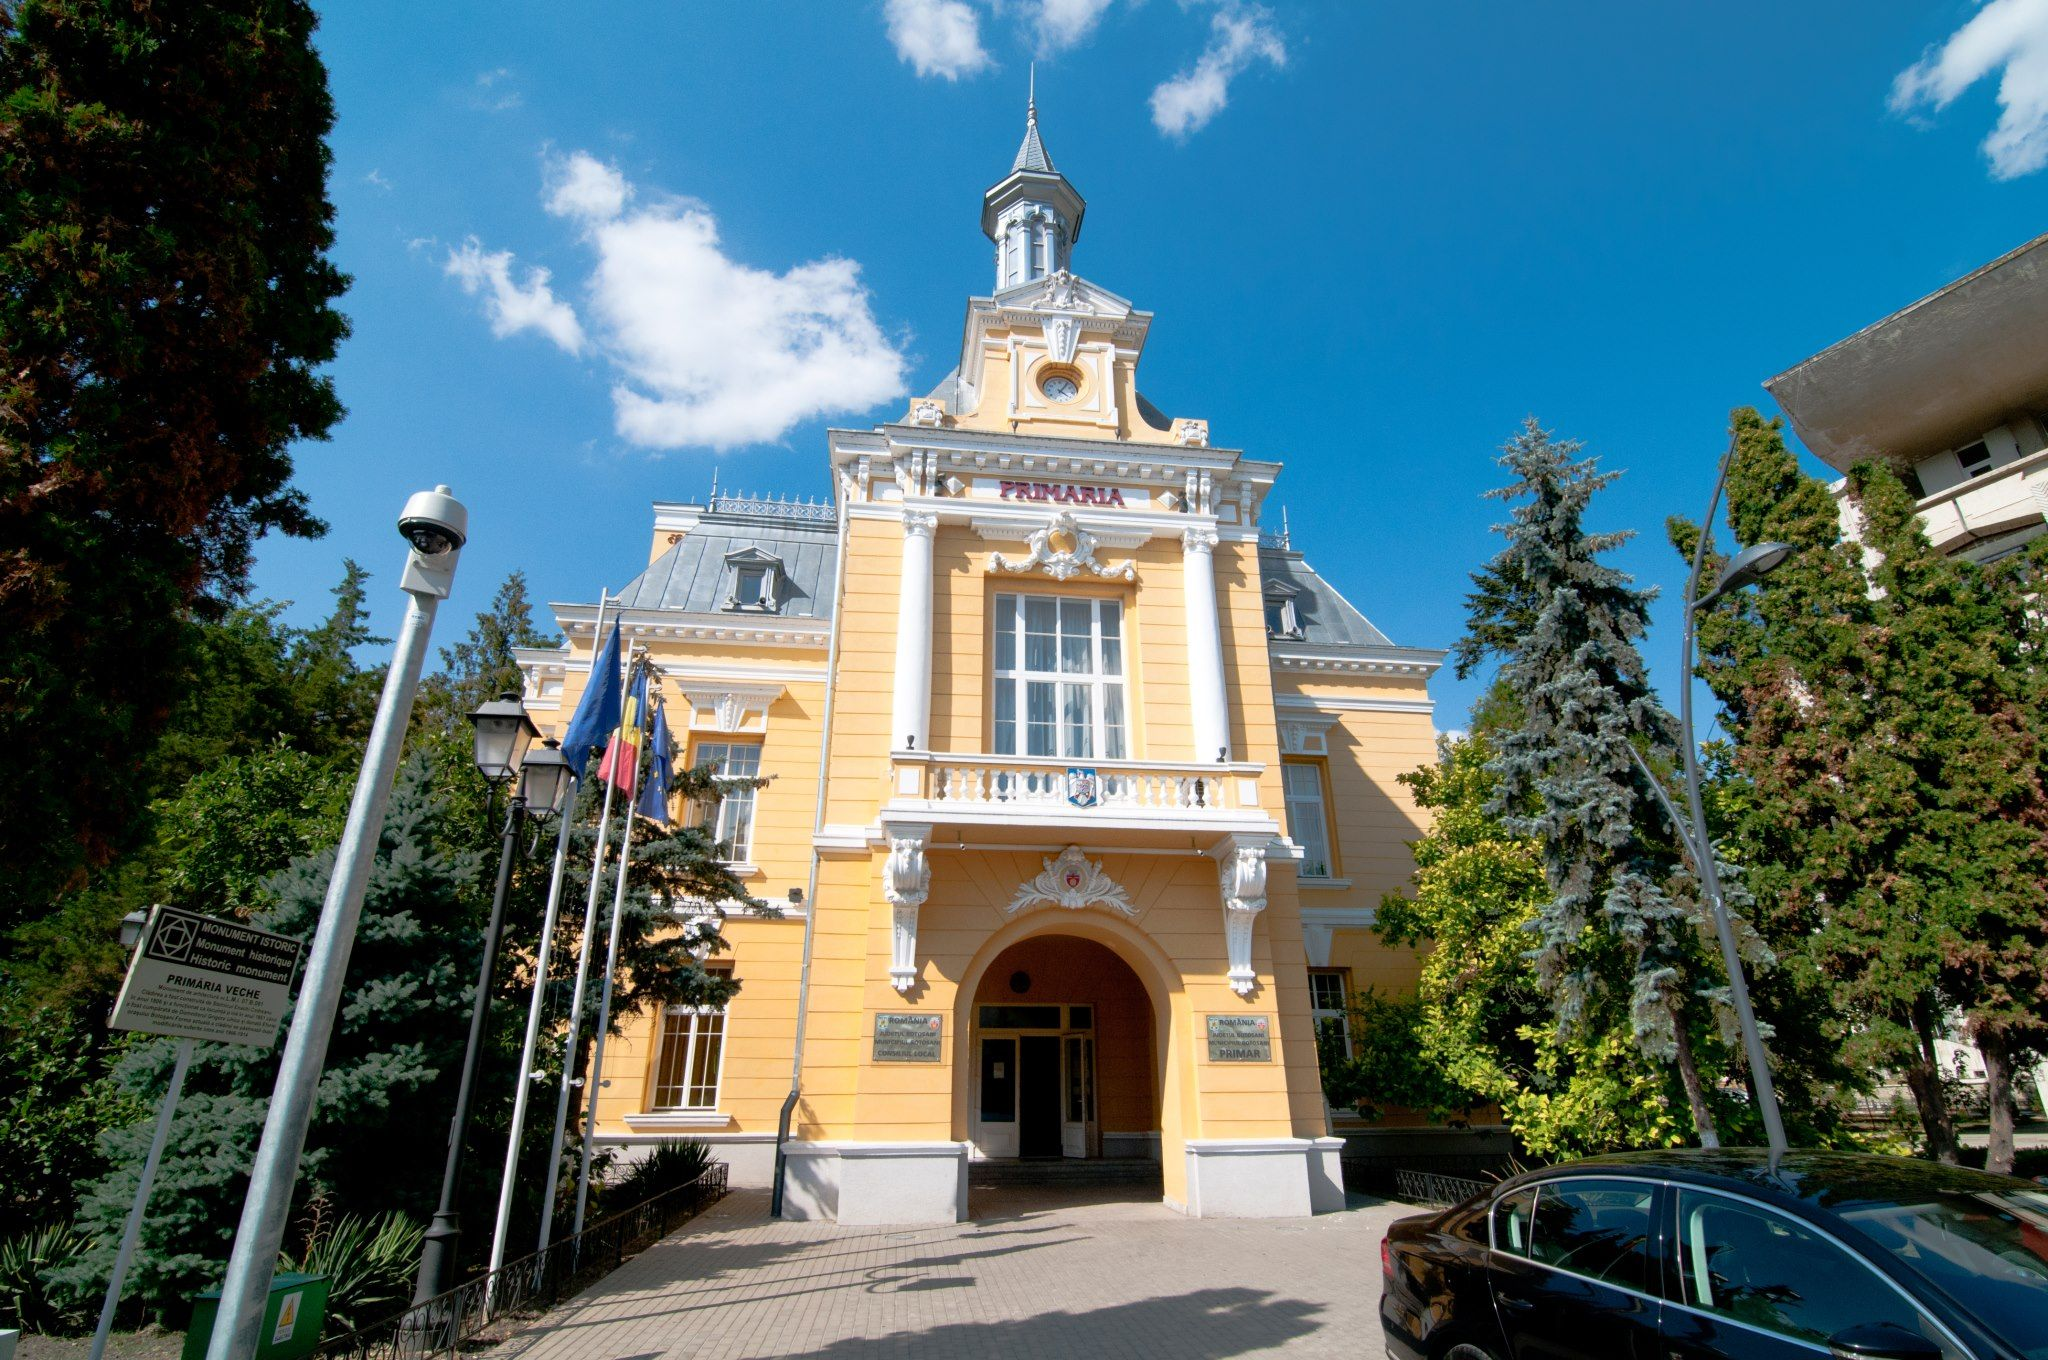 Botosani wants to achieve smart living for the community and for the future generations